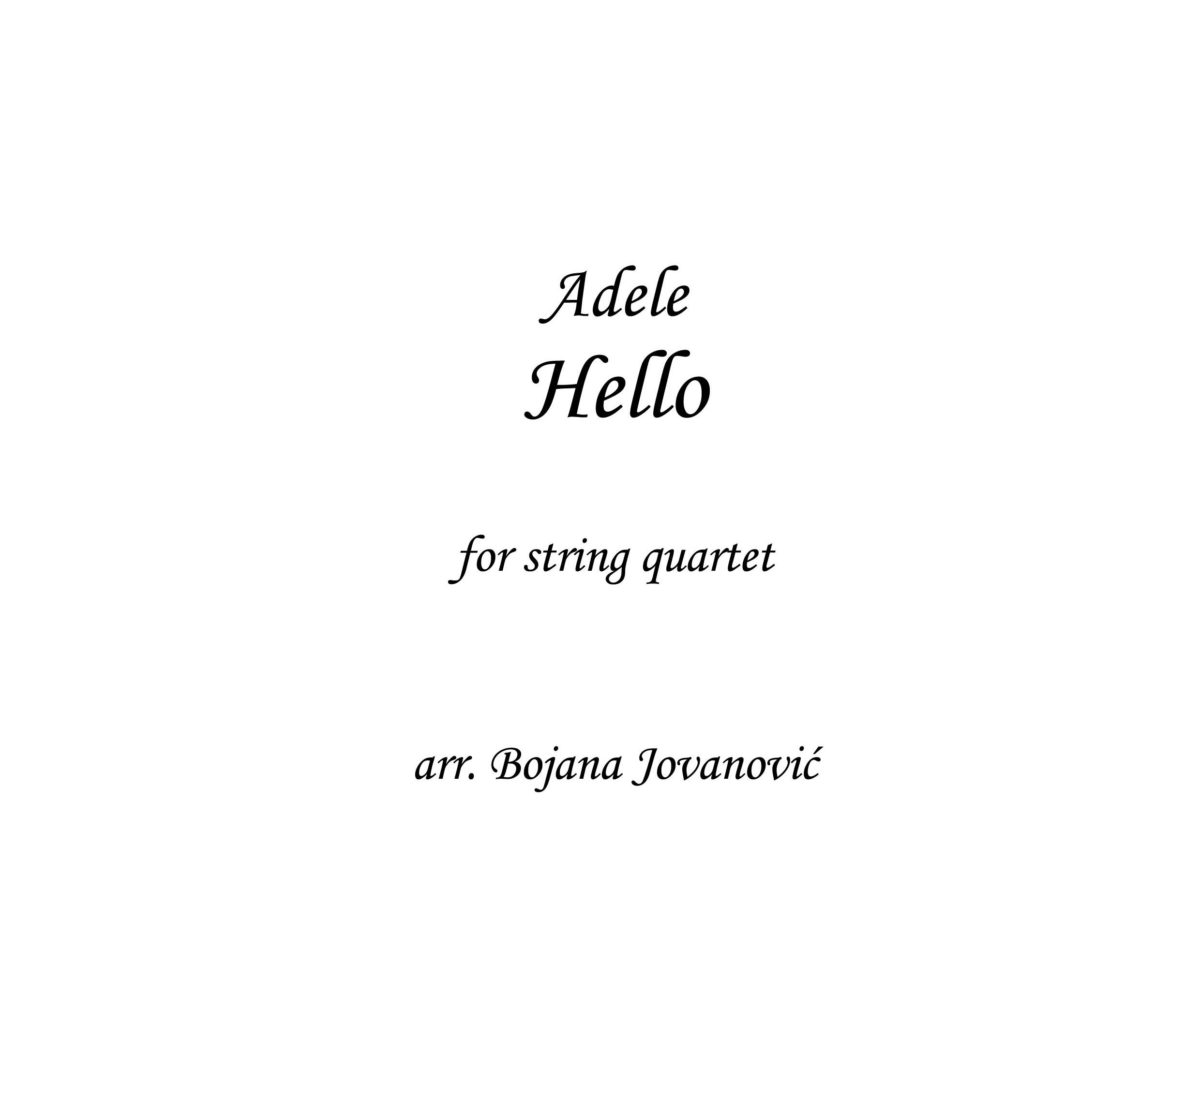 Hello (Adele) - Sheet Music